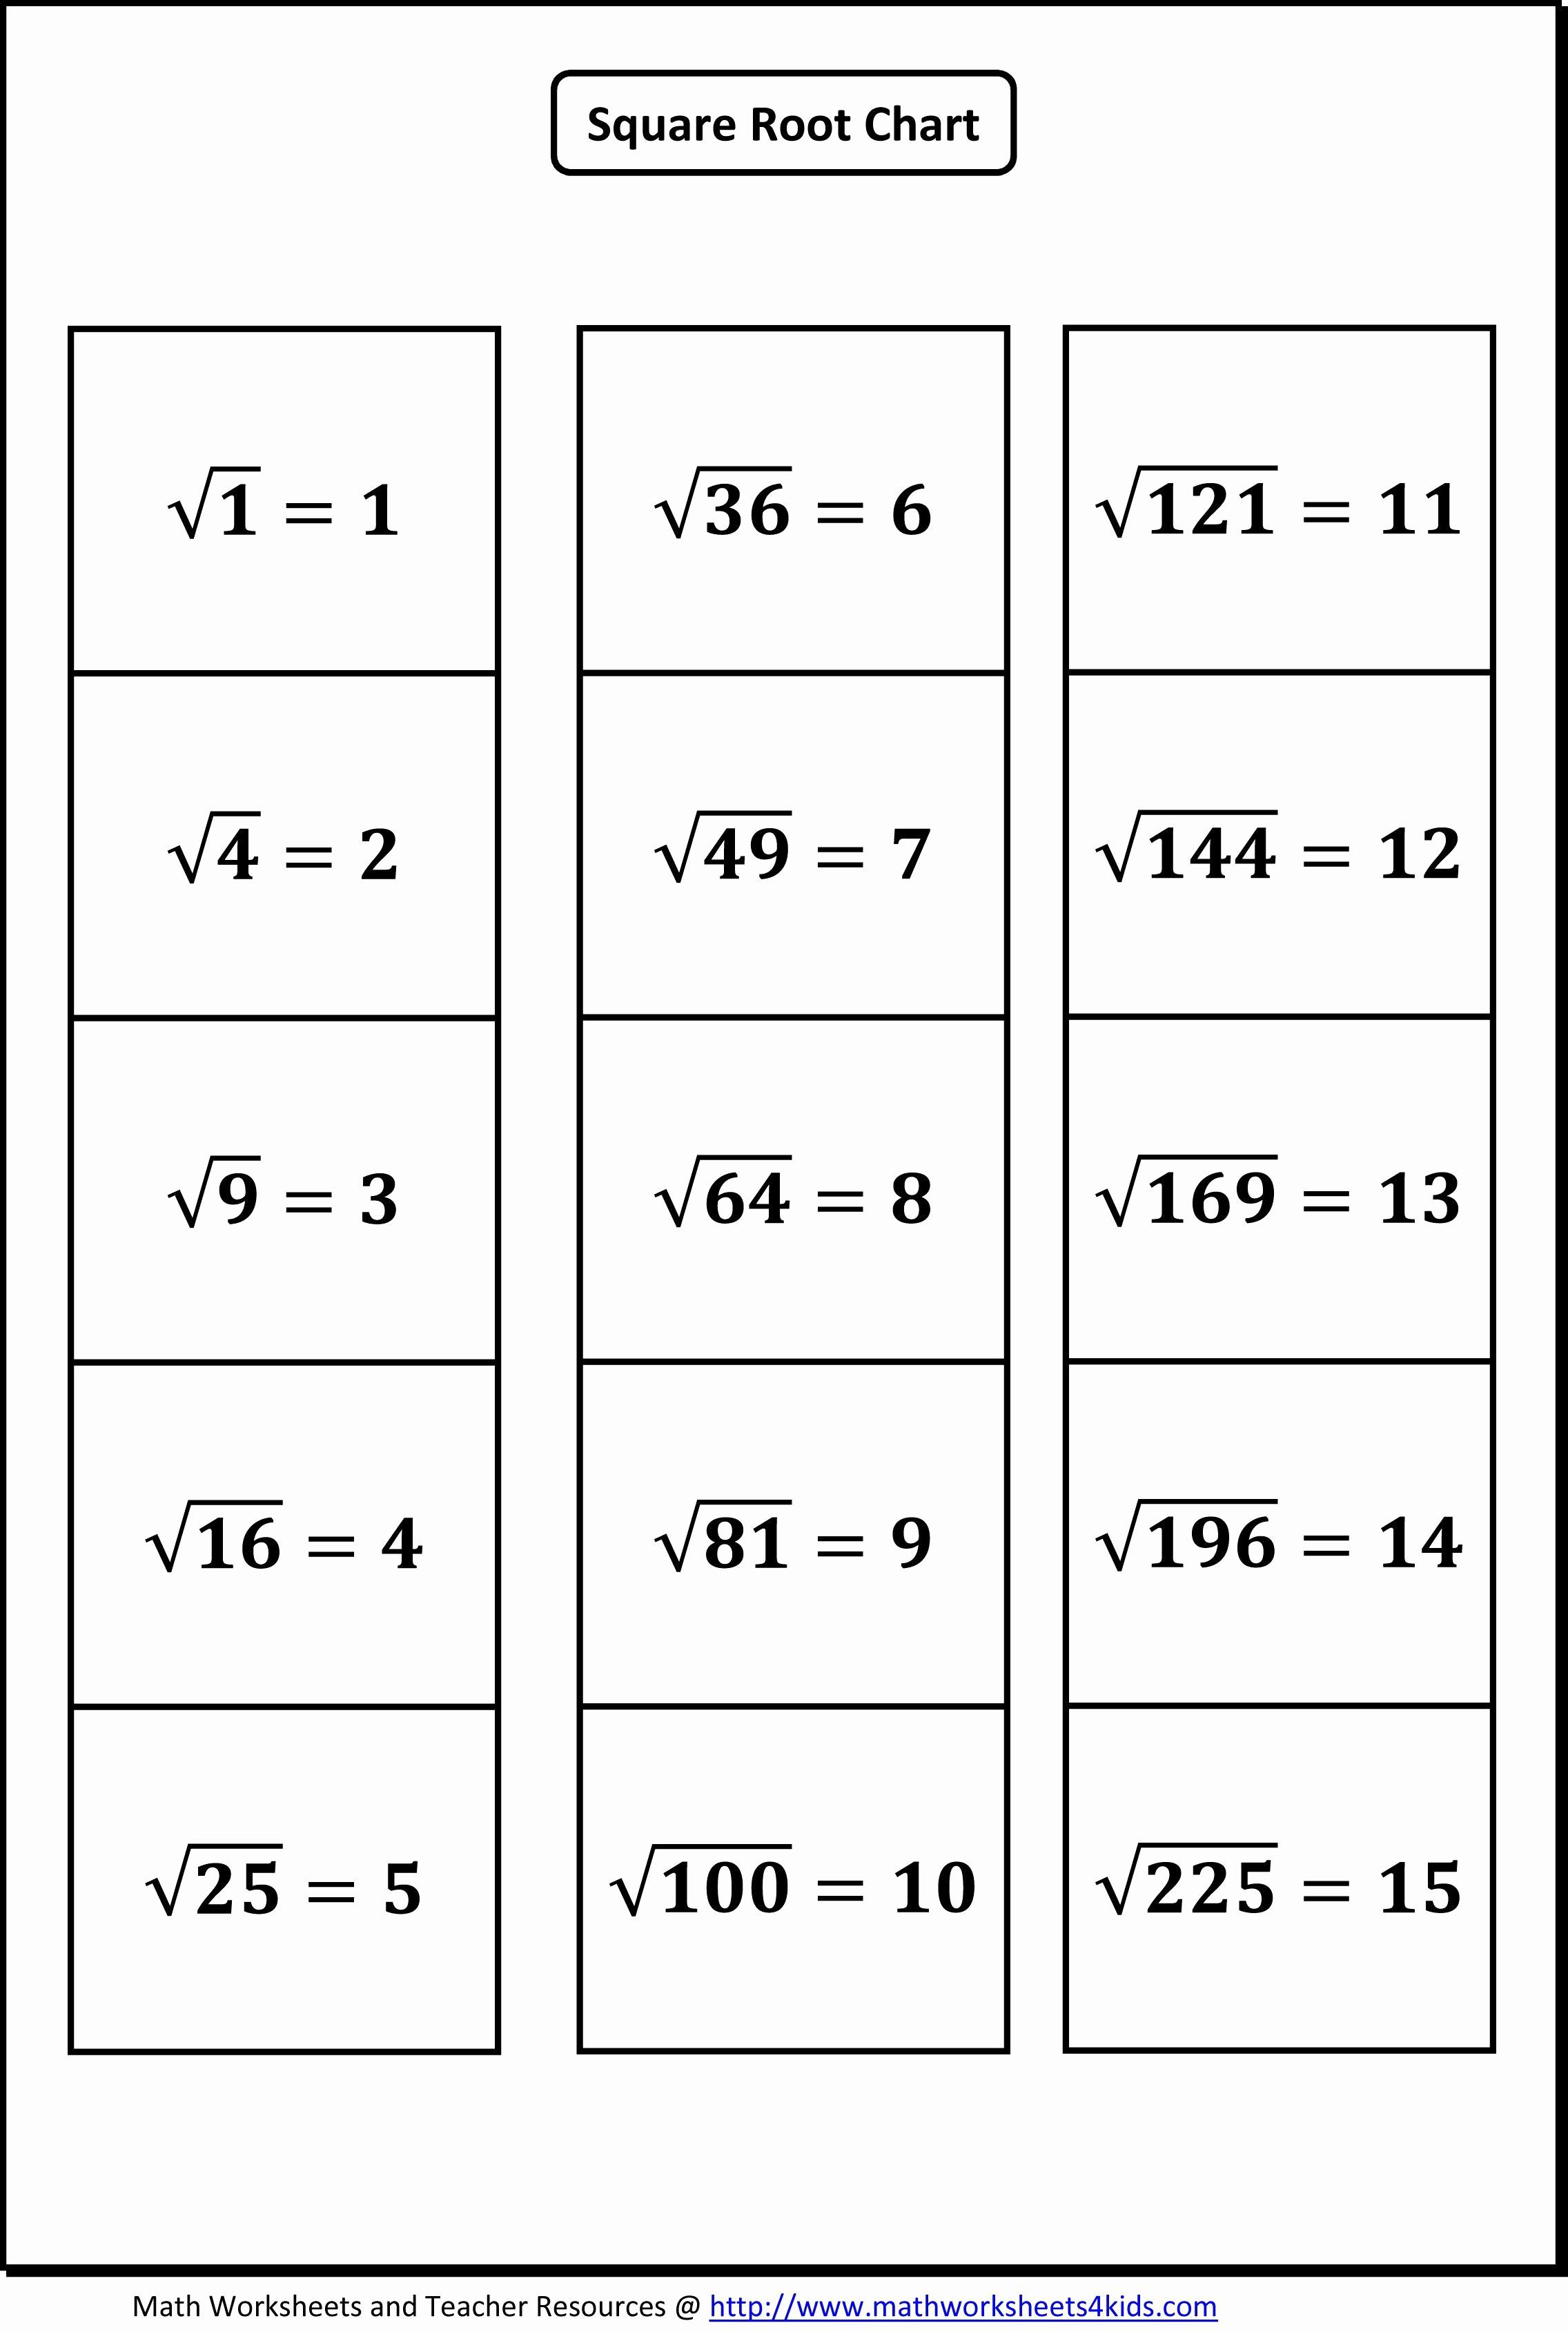 Square Root Worksheet Lovely Domain And Range Square